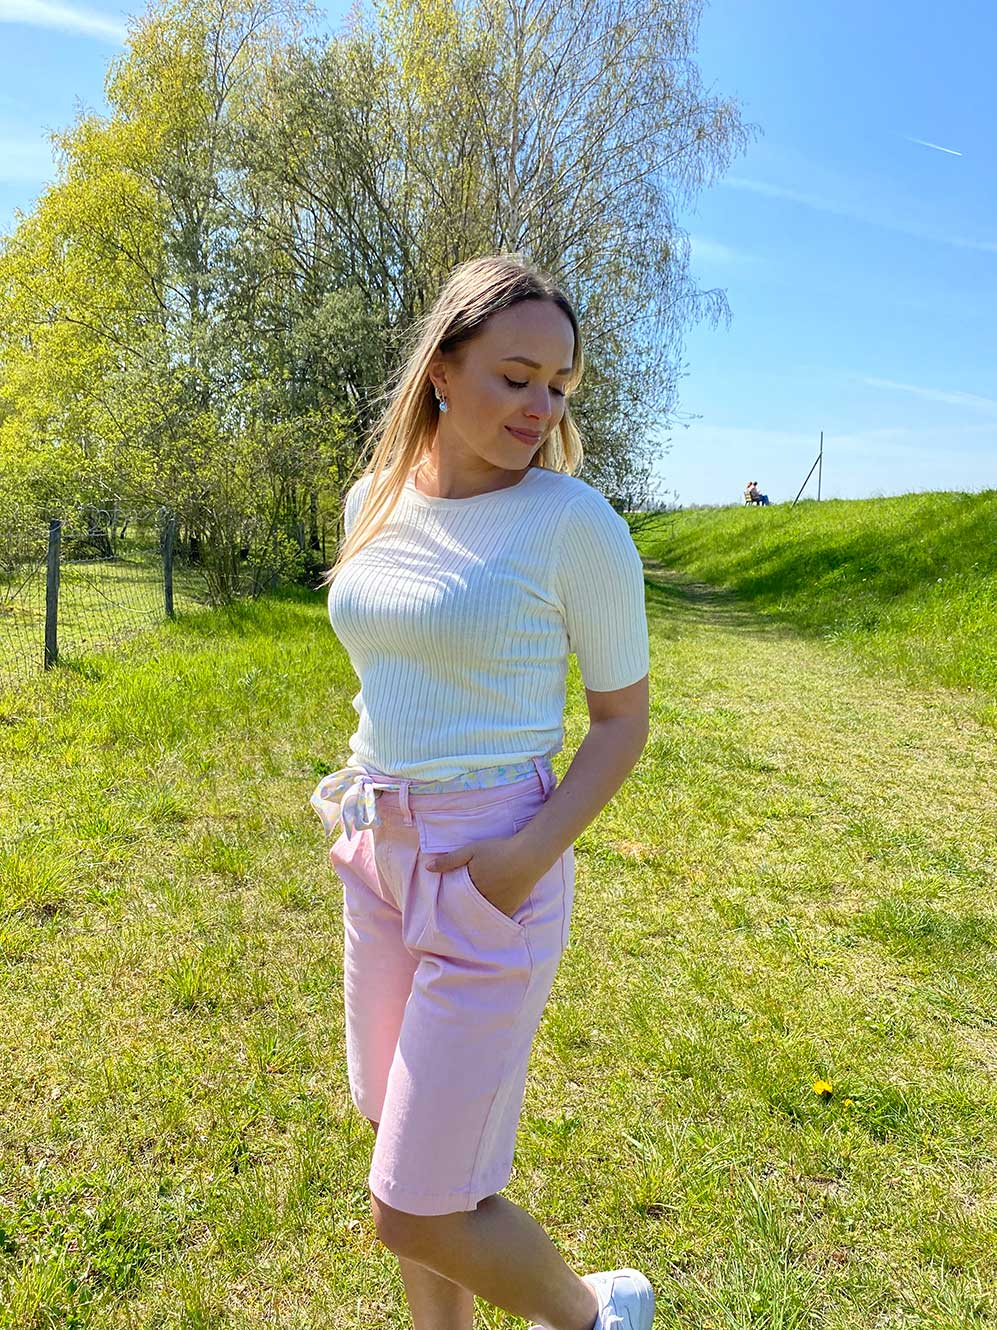 woman with a white tshirt and light pink shorts